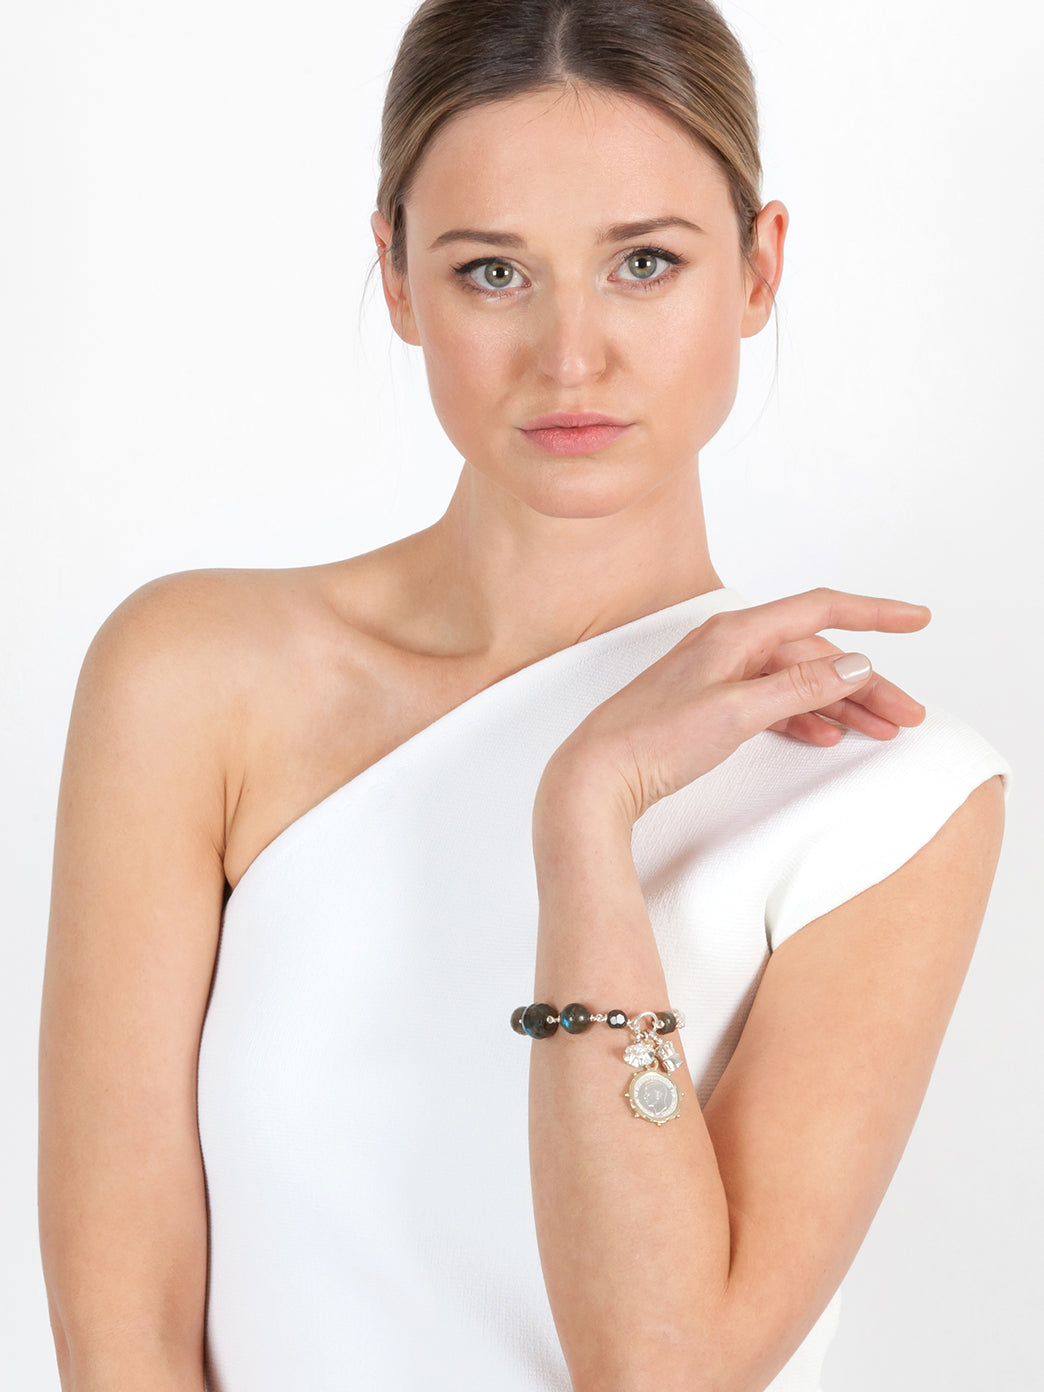 Fiorina Jewellery Carla Bracelet Moonstone Model